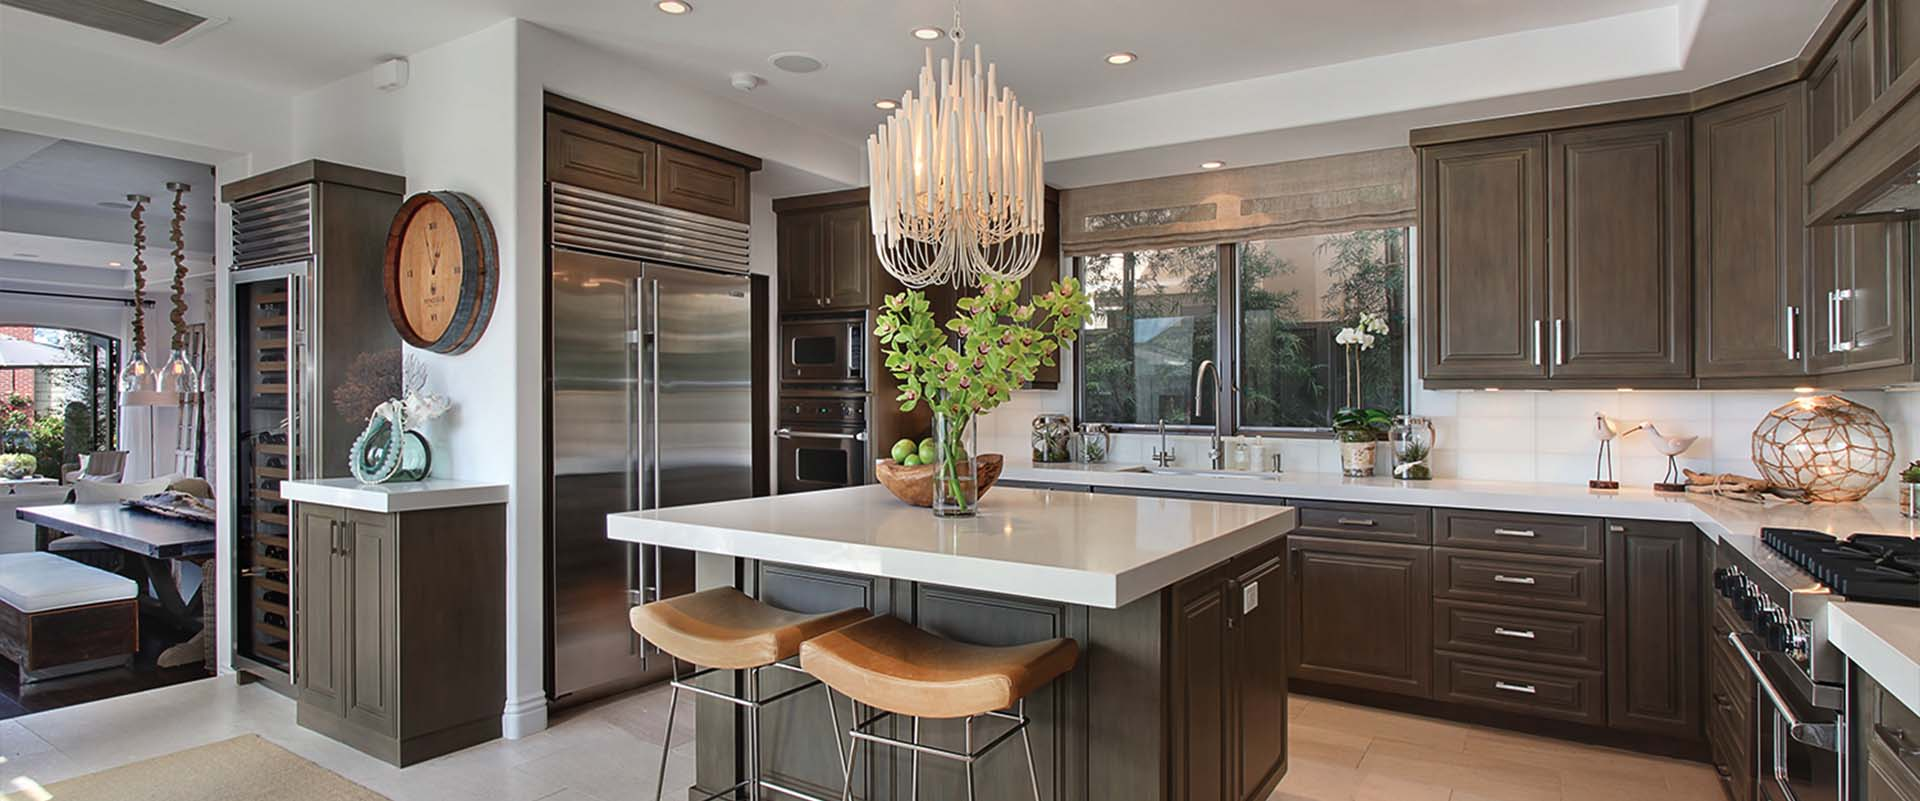 On The Surface Blog Countertops Tile And Hardscaping